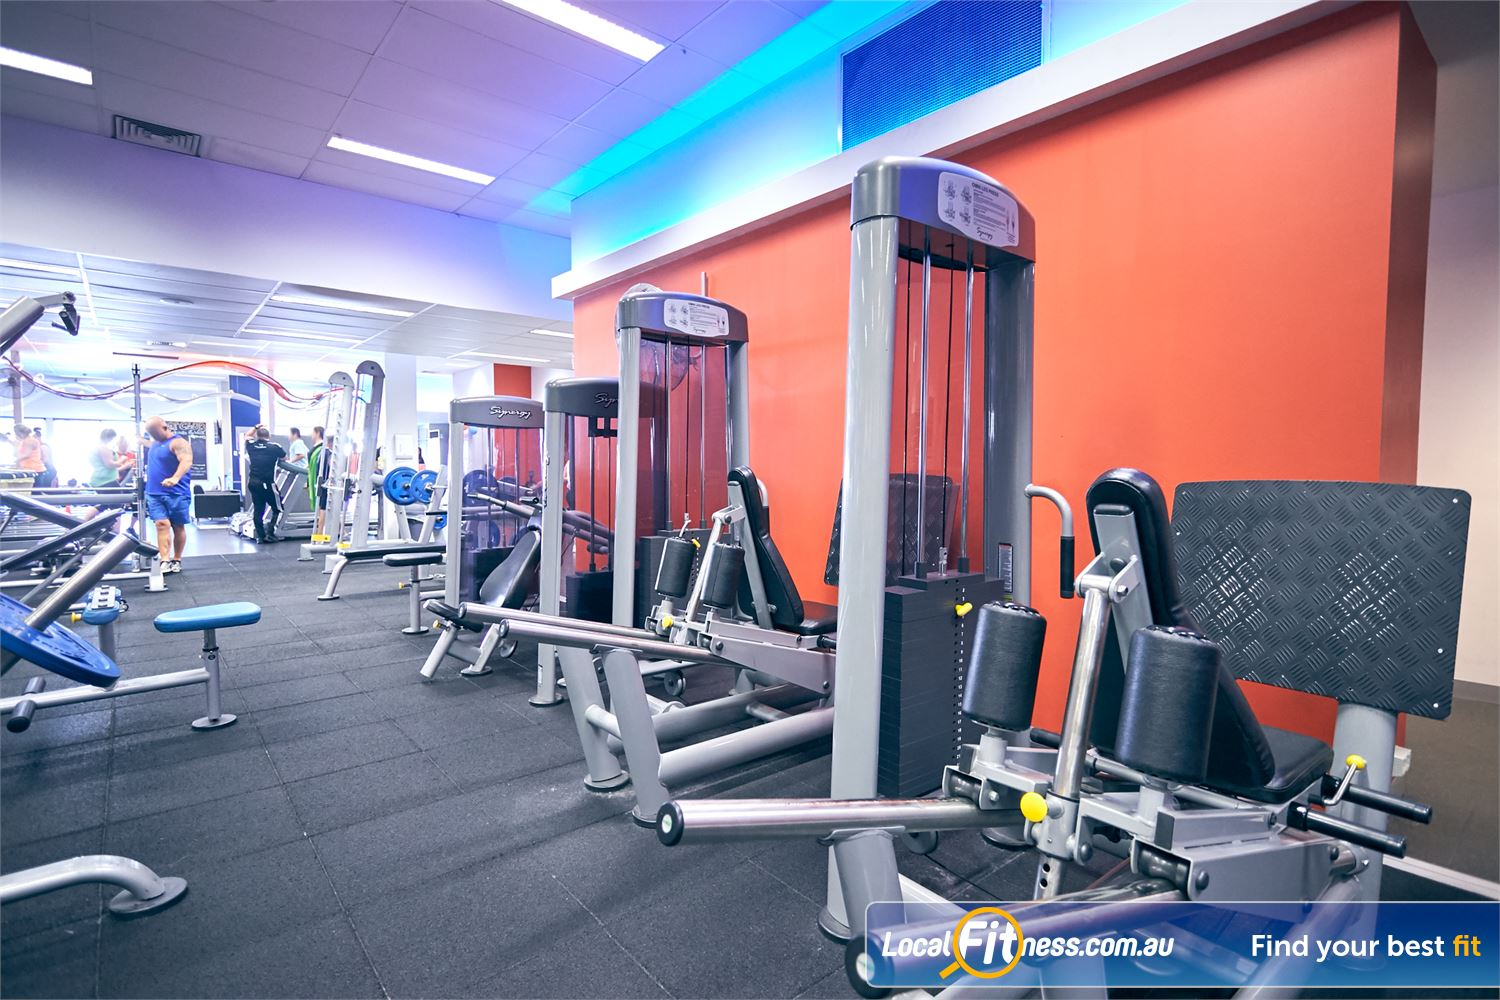 Goodlife Health Clubs Cross Roads Near Lower Mitcham Can't sleep? burn calories instead at Goodlife Westbourne Park gym 24/7.